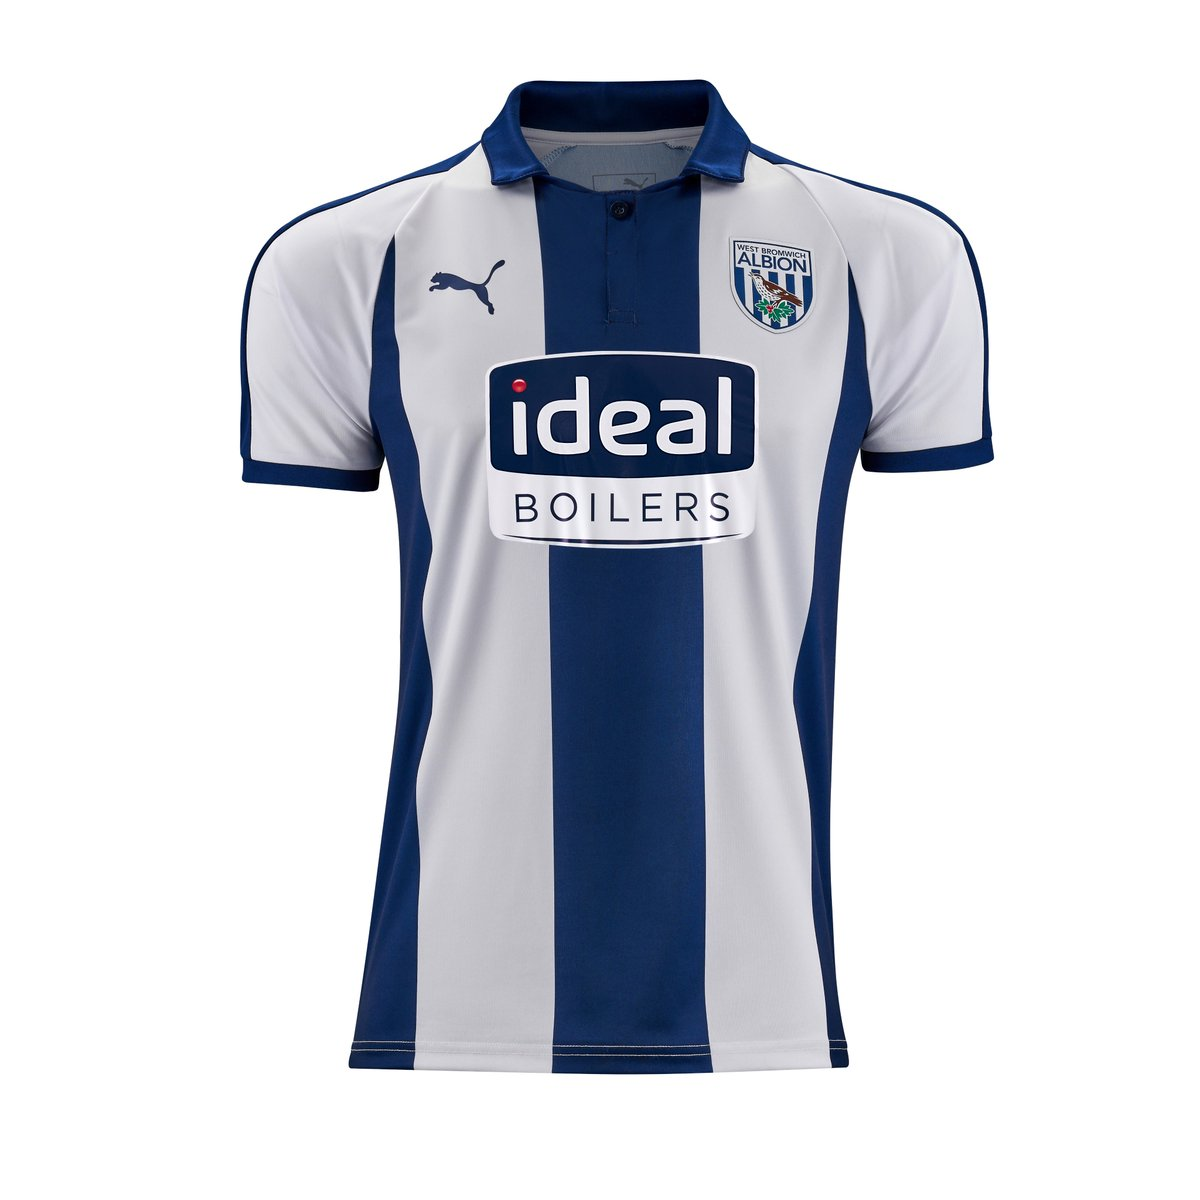 4249cb5f7a West Bromwich Albion on Twitter: